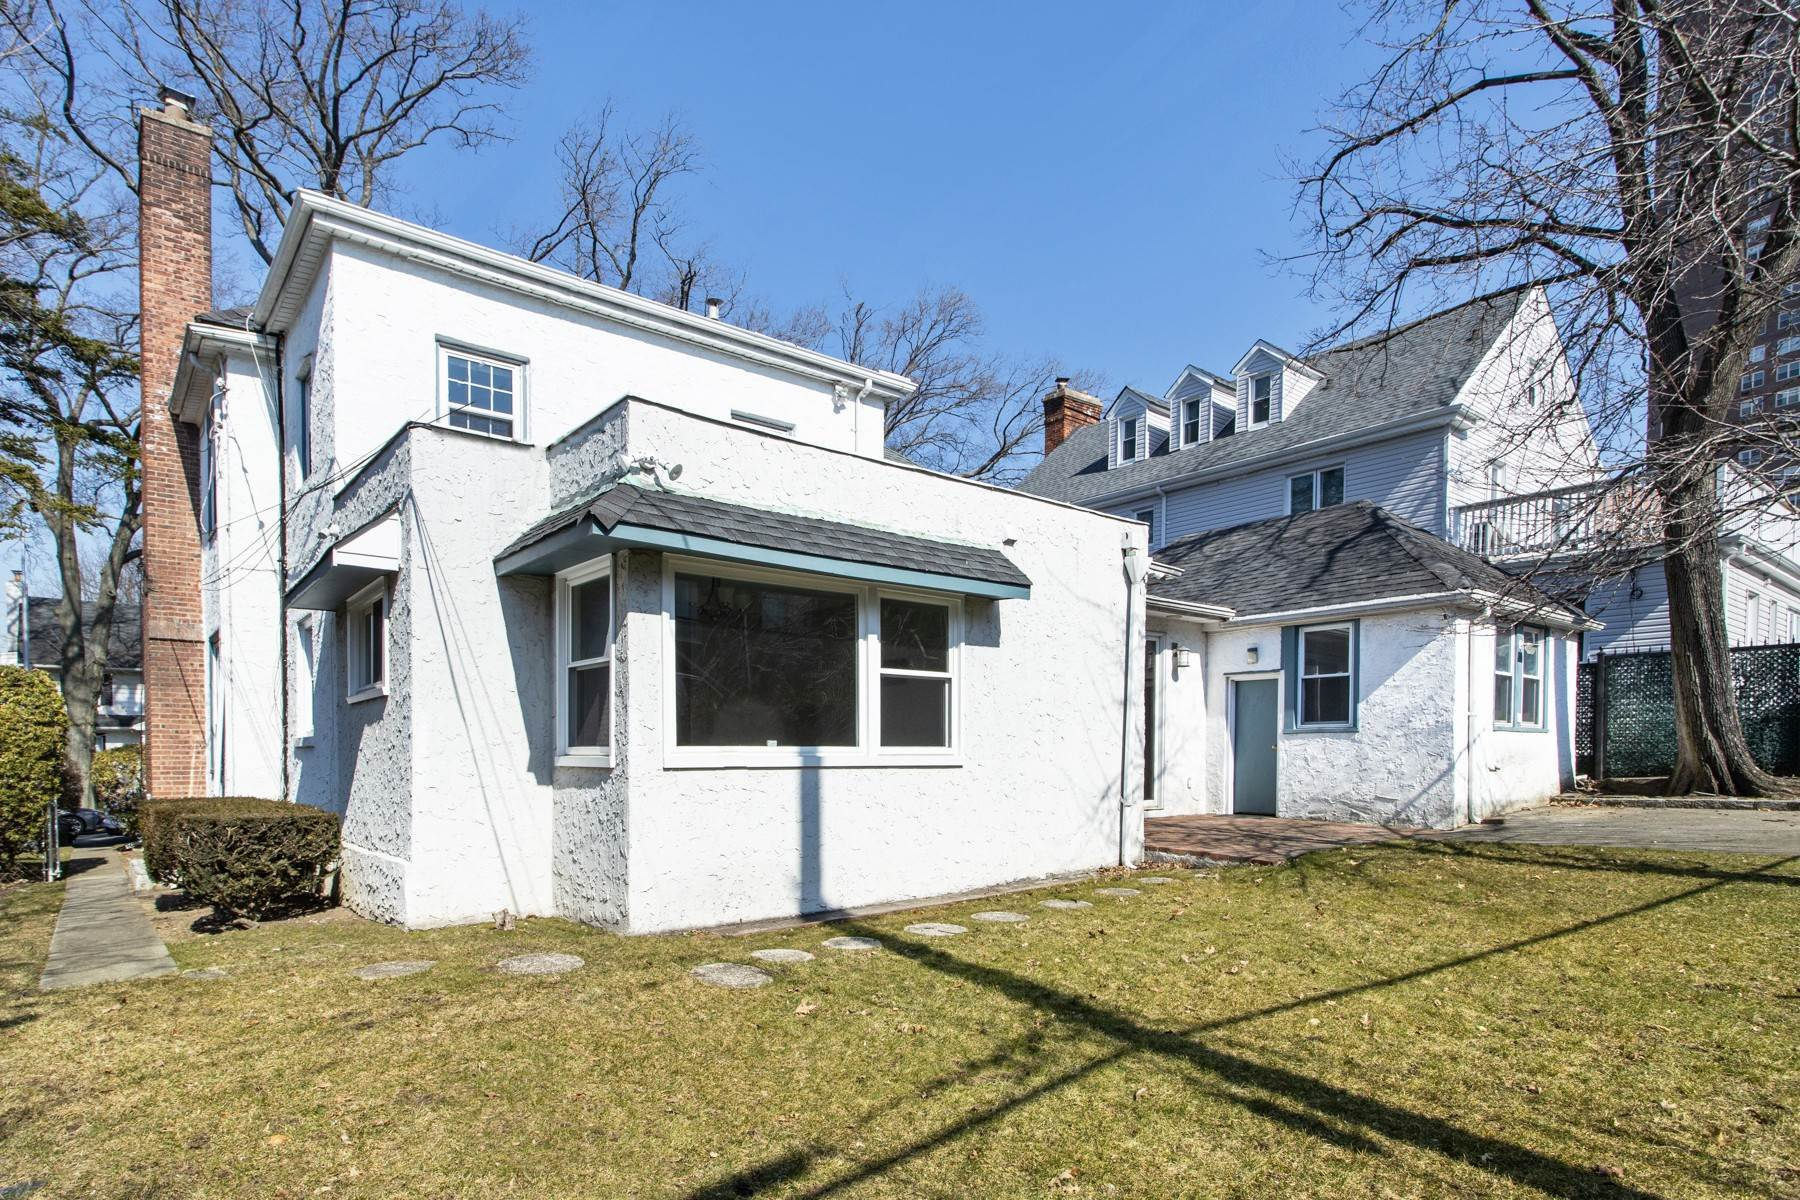 19. Single Family Homes for Sale at 'GRACIOUS LIVING IN KEW GARDENS' 103 Mowbray Drive, Kew Gardens, New York 11415 United States